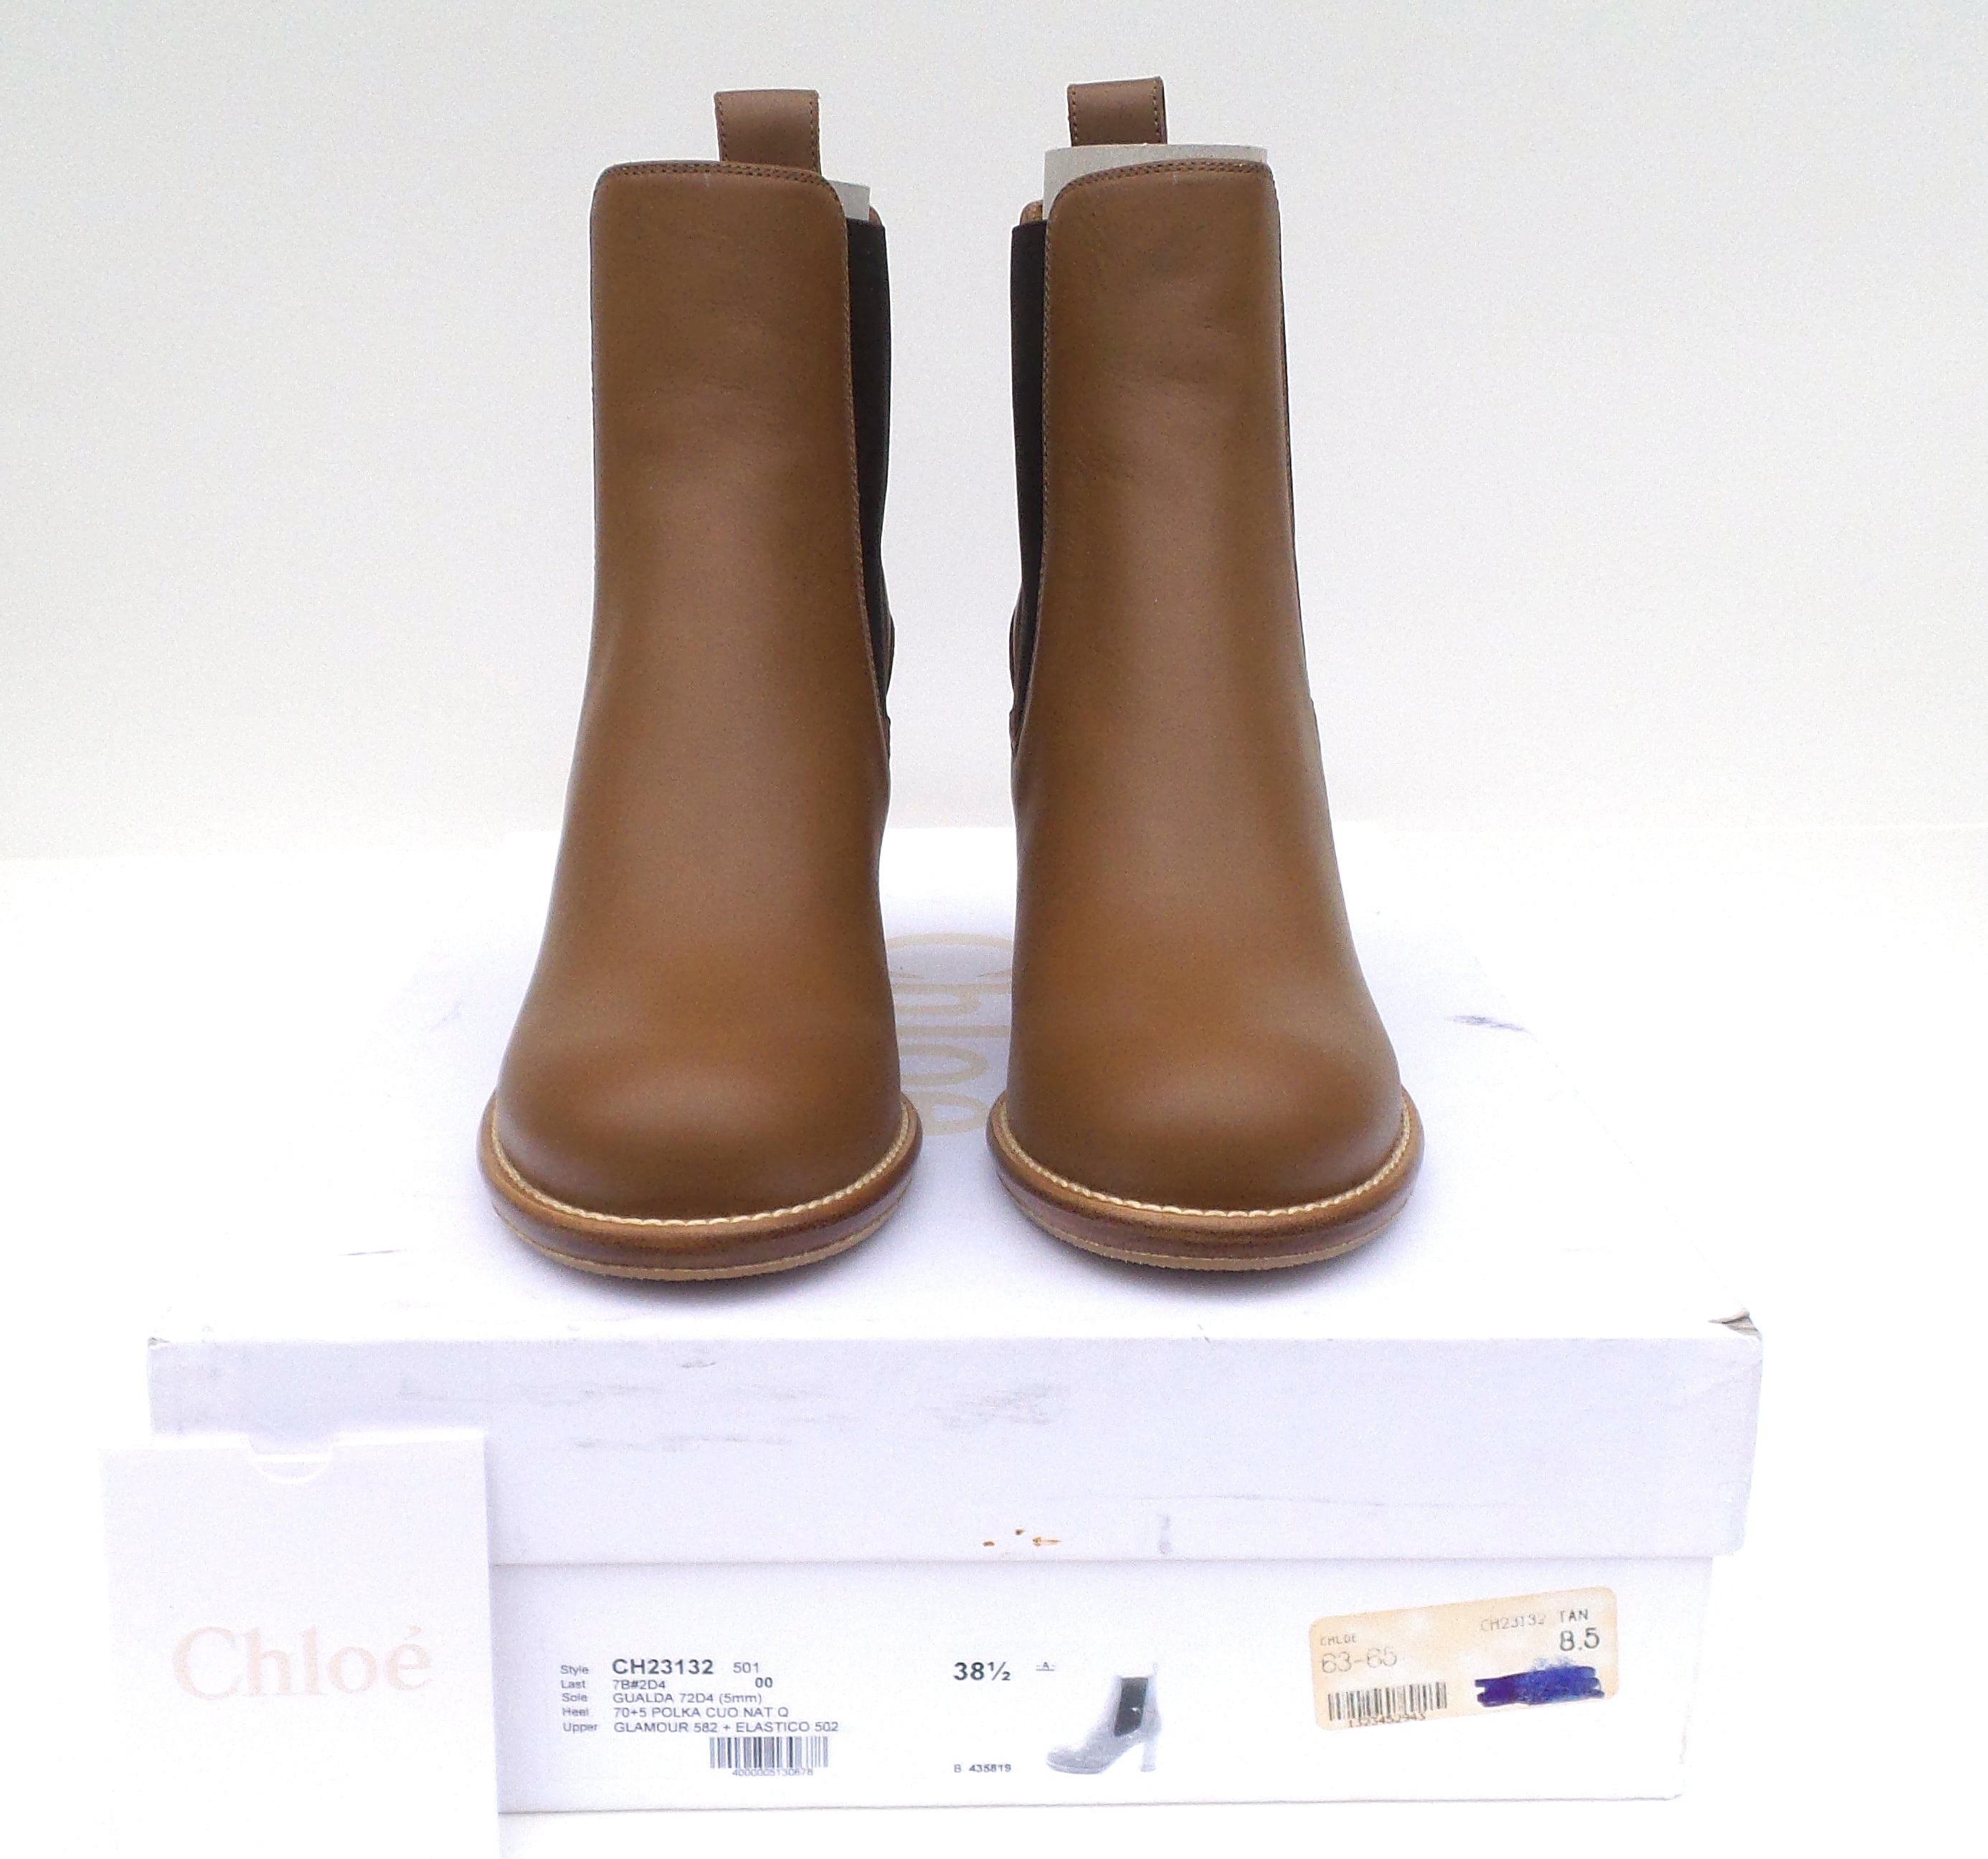 CHLOE Camel Tan Brown Leather Stacked Block Heel Ankle Boots 38.5